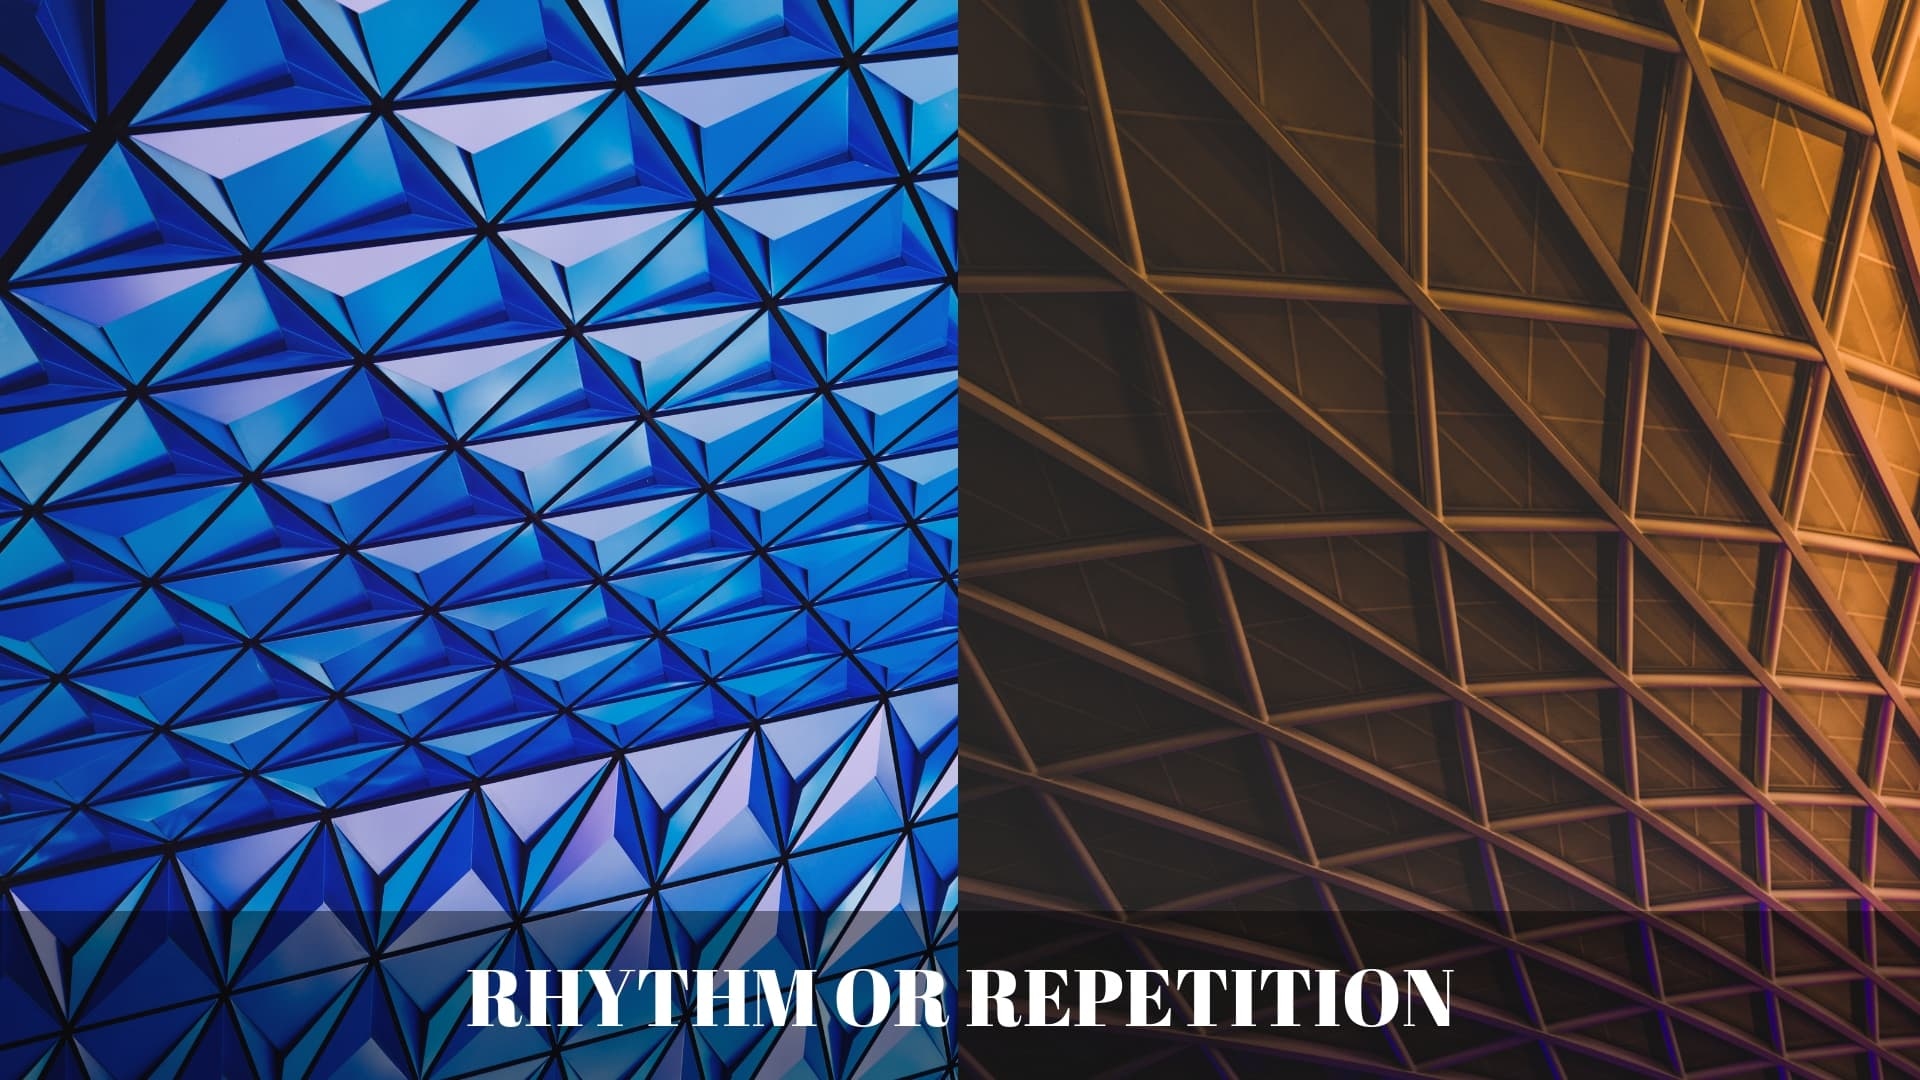 Rhythm or Repetition